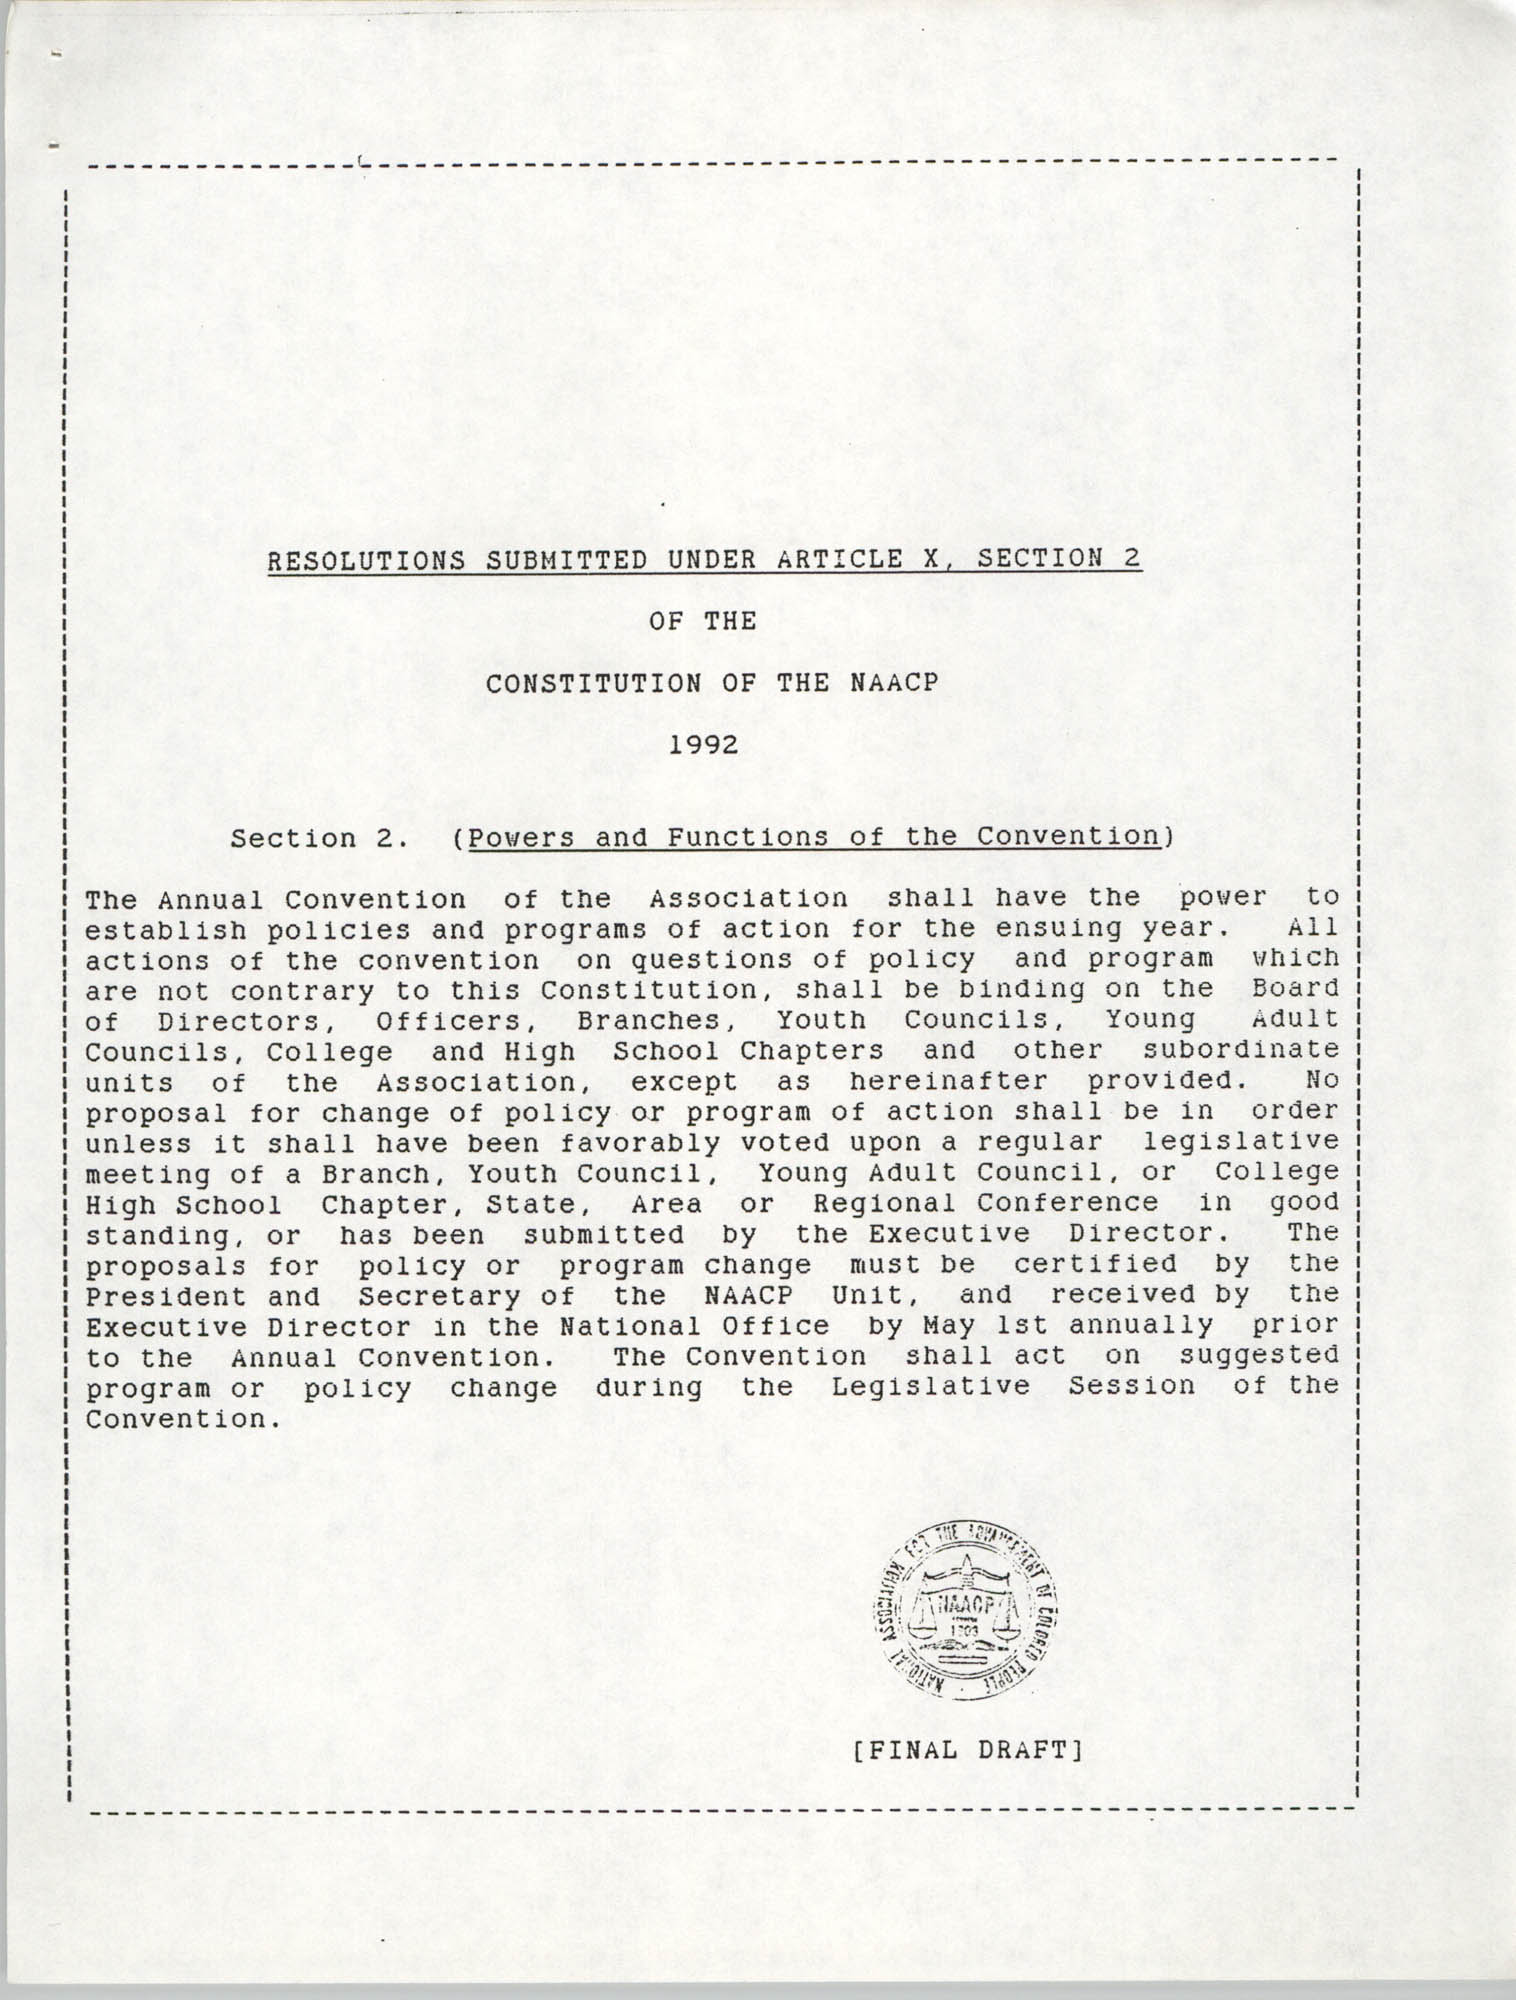 Resolutions Submitted Under Article X, Section 2 of the Constitution of the NAACP, 1992, Cover Page